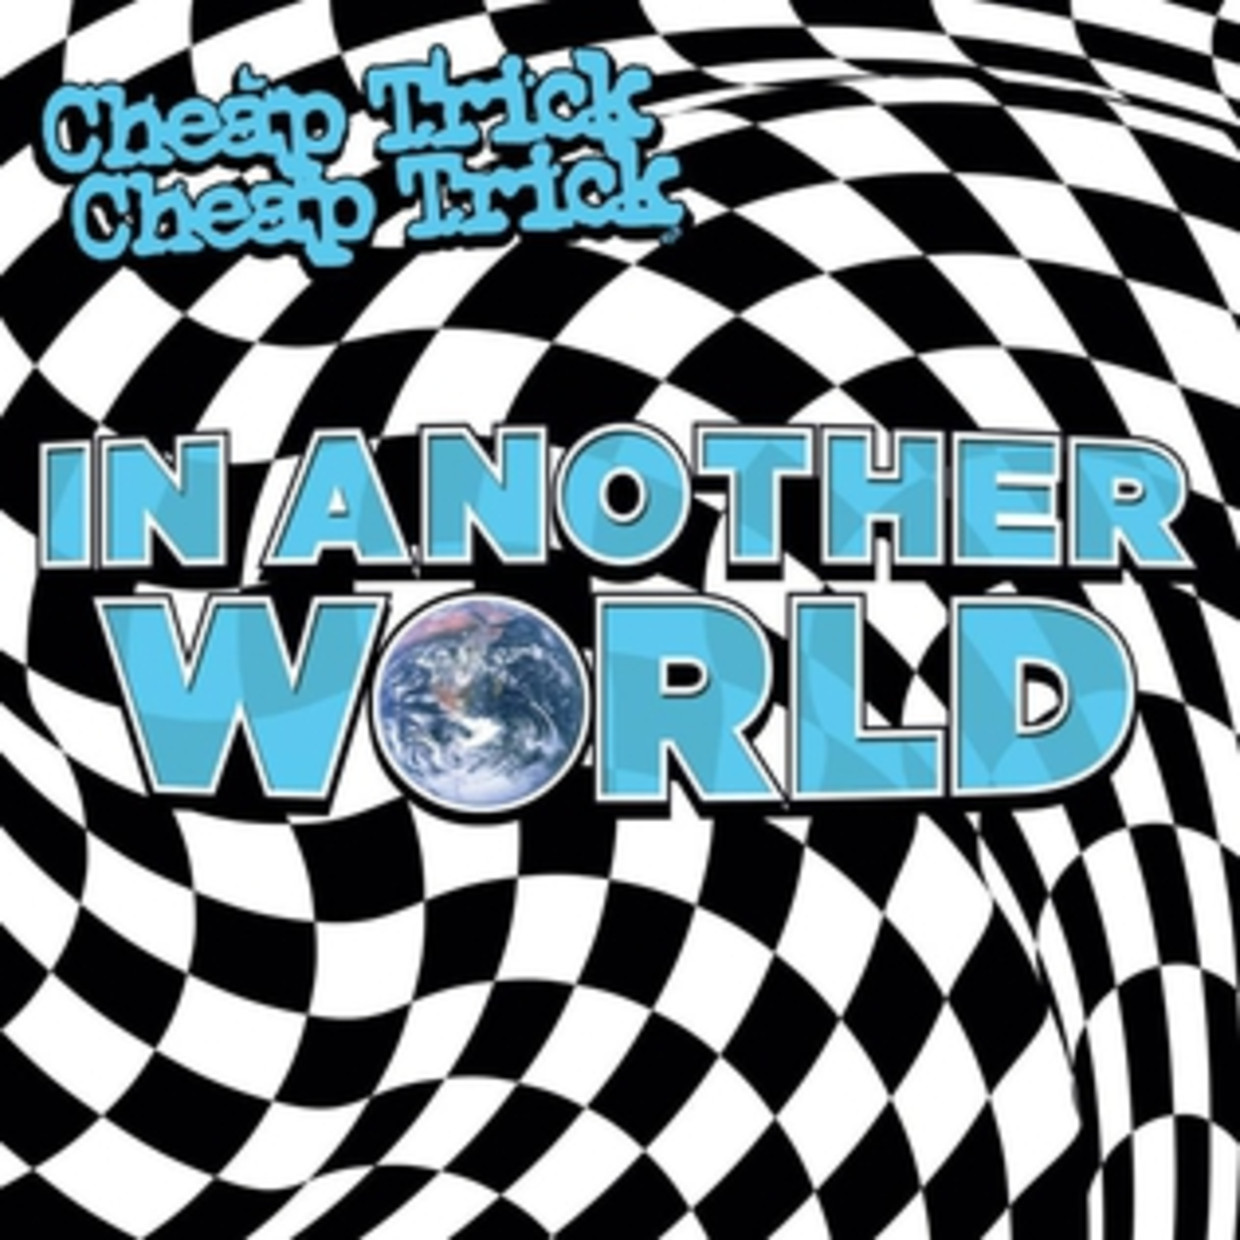 CHEAP TRICK In Another World Beeld RV